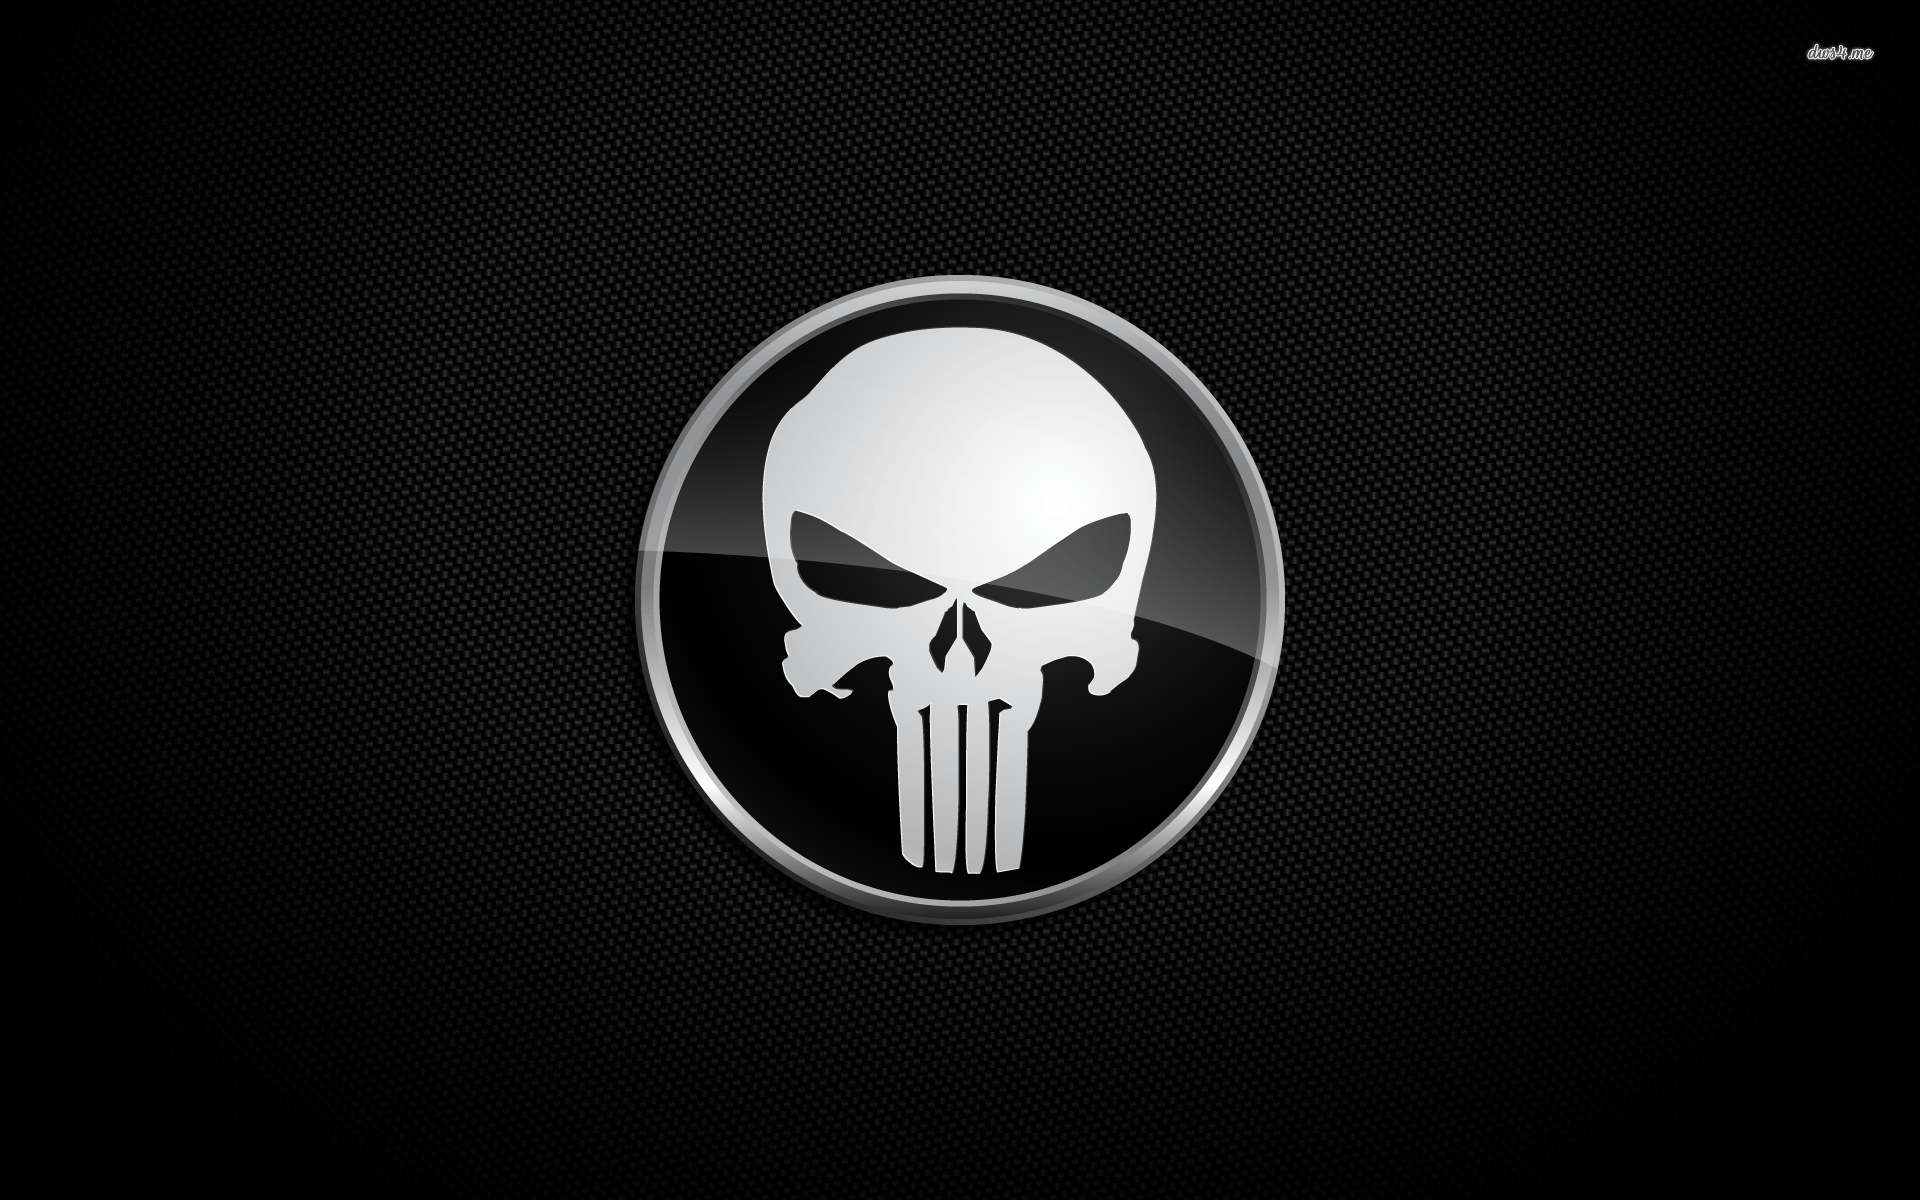 punisher logo wallpapers - photo #30